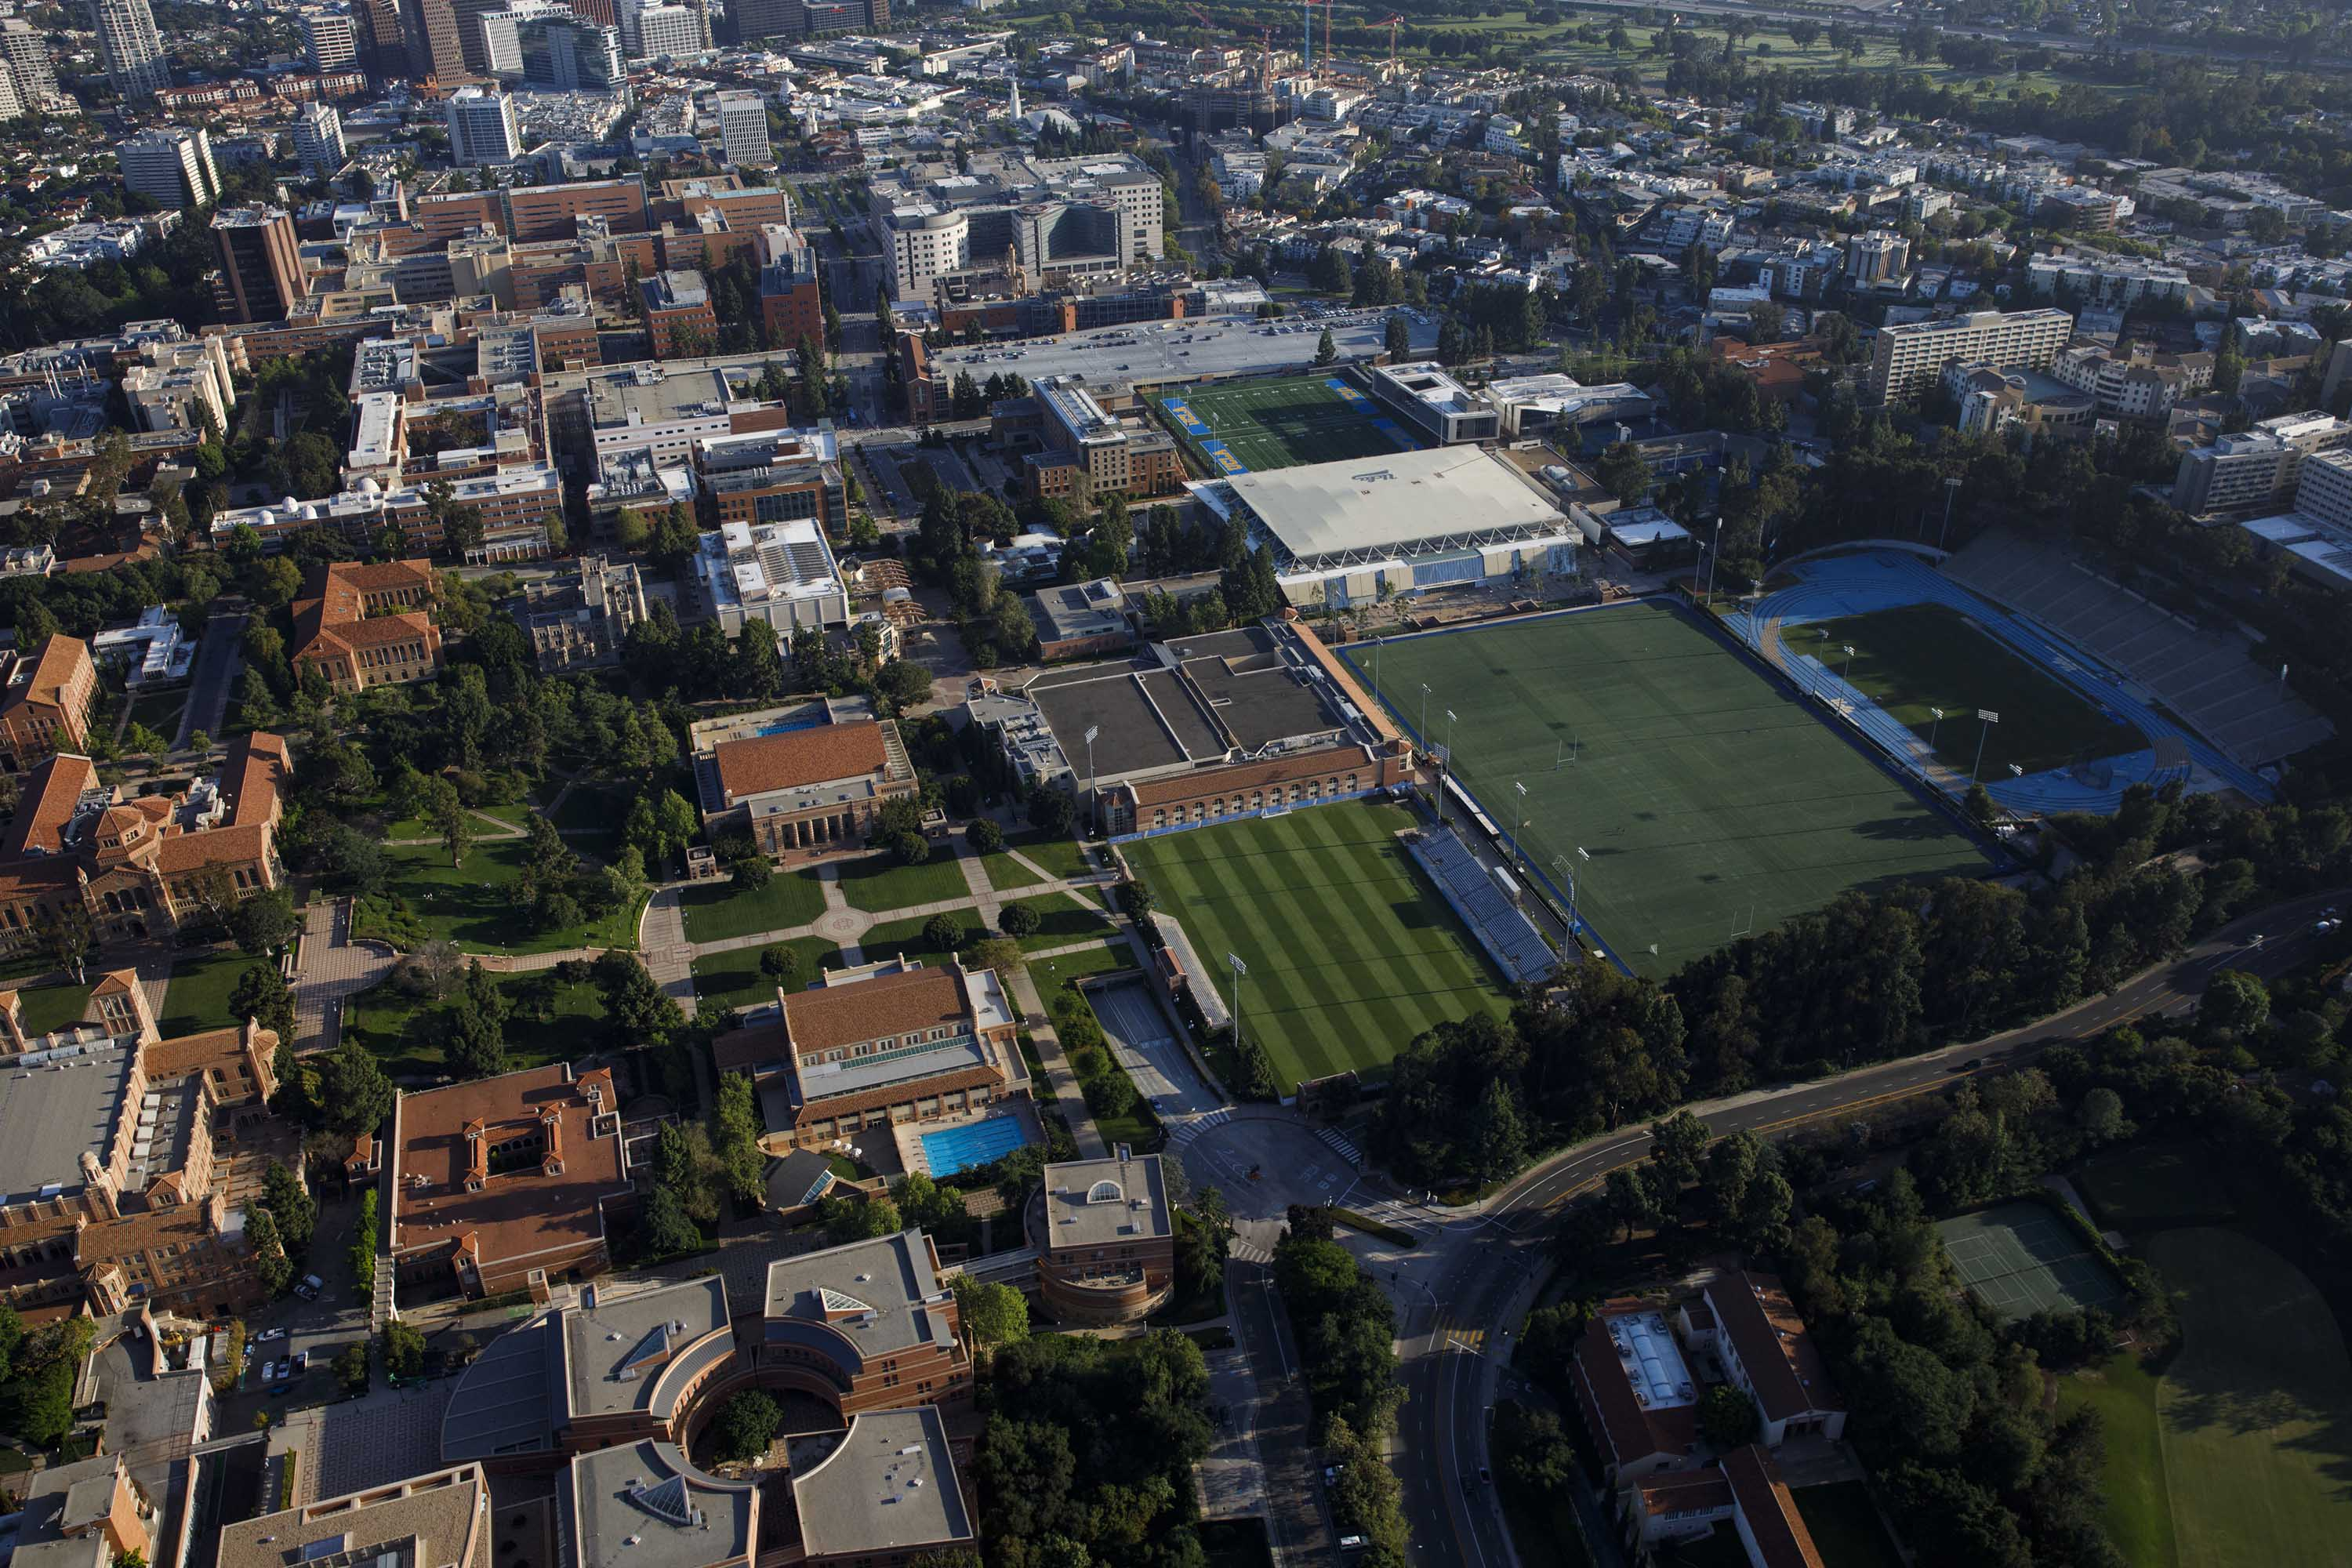 An aerial view shows the University of California Los Angeles (UCLA) campus in Los Angeles, California, on May 1.